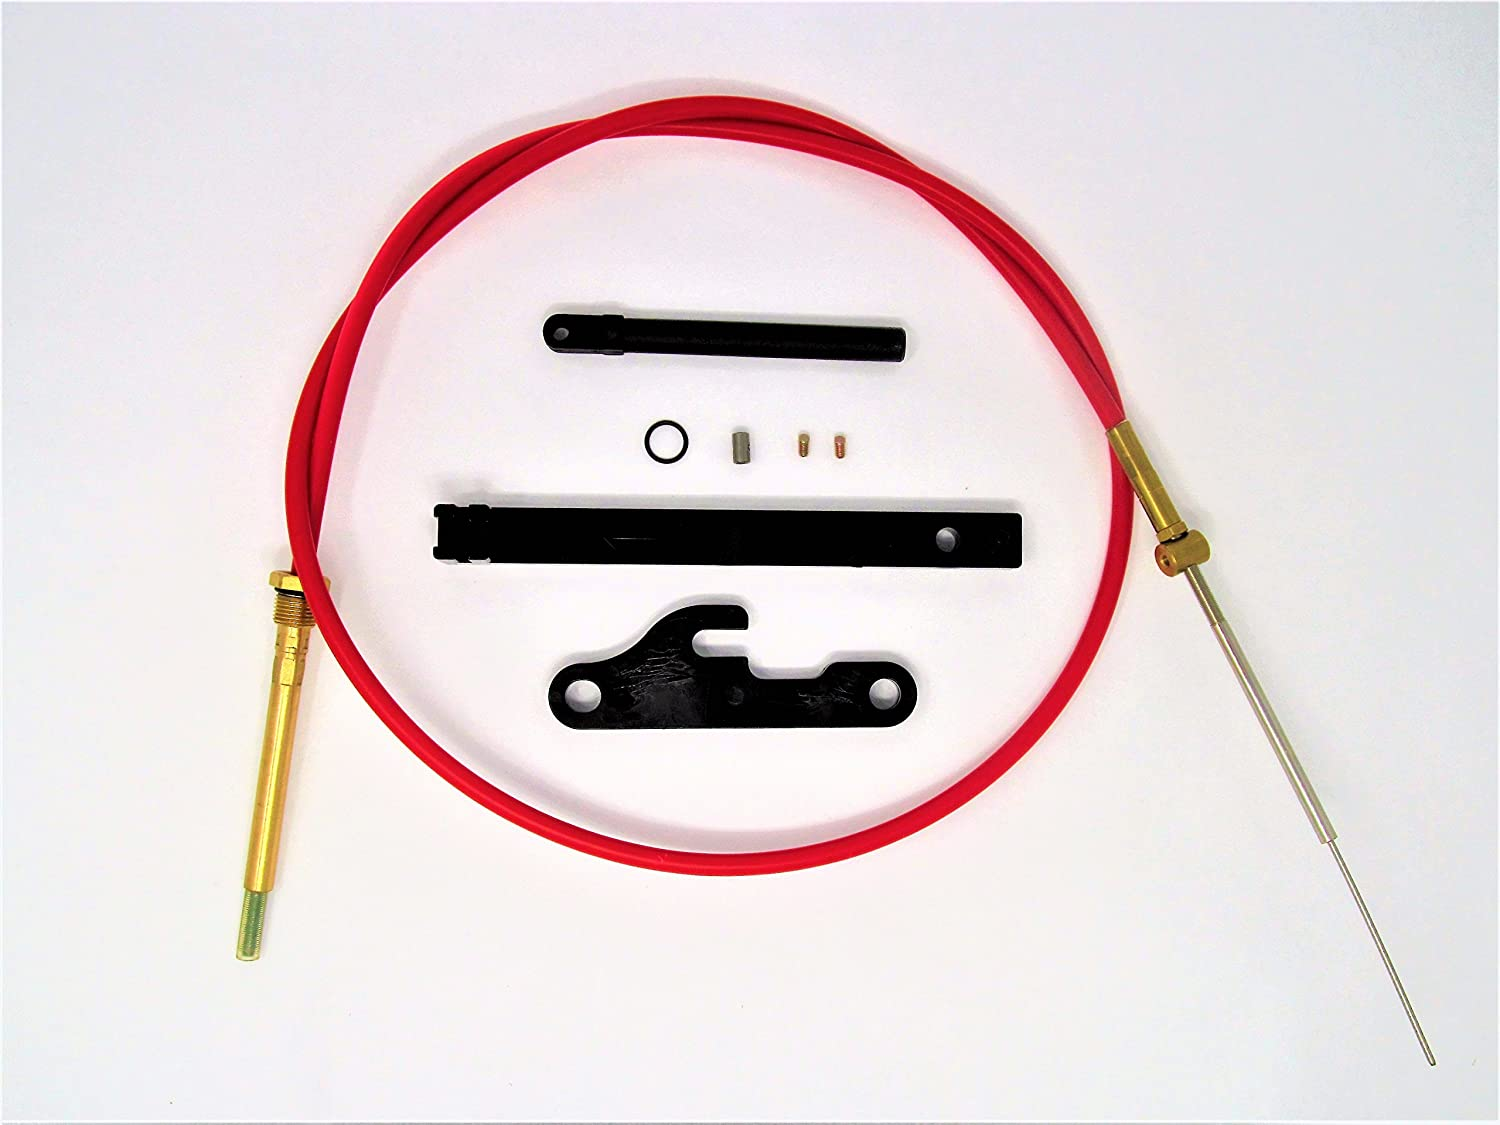 Omc Cobra Outdrive Shift Cable Shifter Wiring Diagram Marine Parts House Complete Repair Kit Tool Sports Outdoors 1500x1125